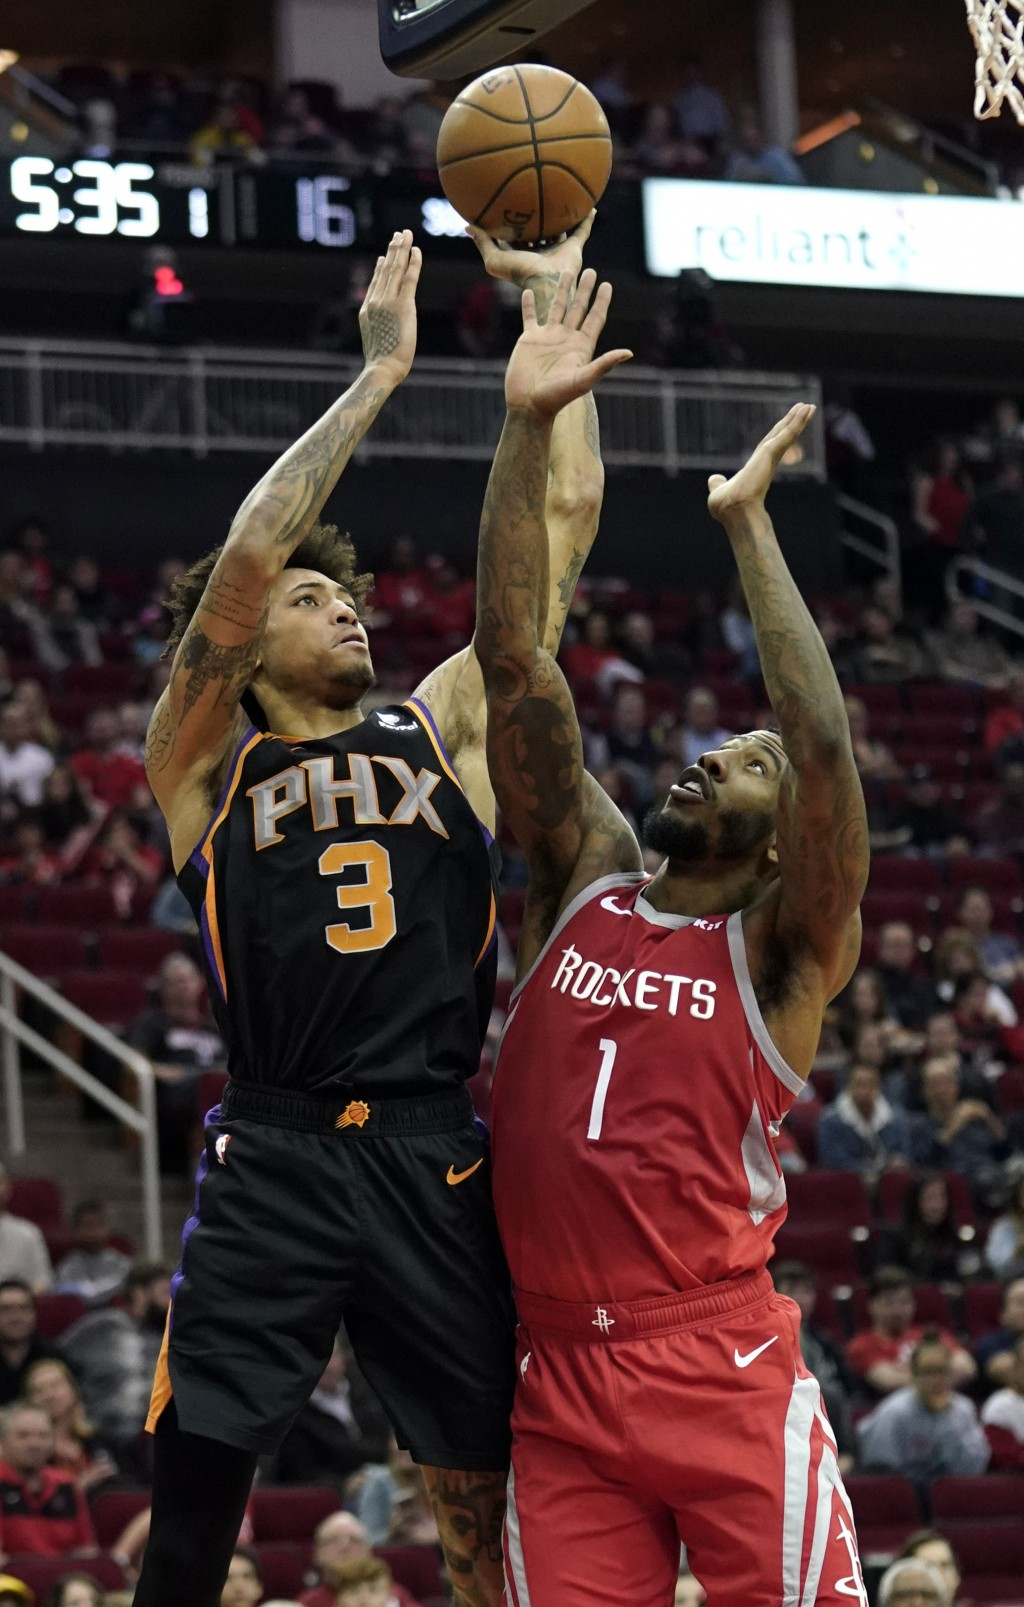 Phoenix Suns' Kelly Oubre Jr. (3) shoots as Houston Rockets' Iman Shumpert (1) defends during the first half of an NBA basketball game Friday, March 1